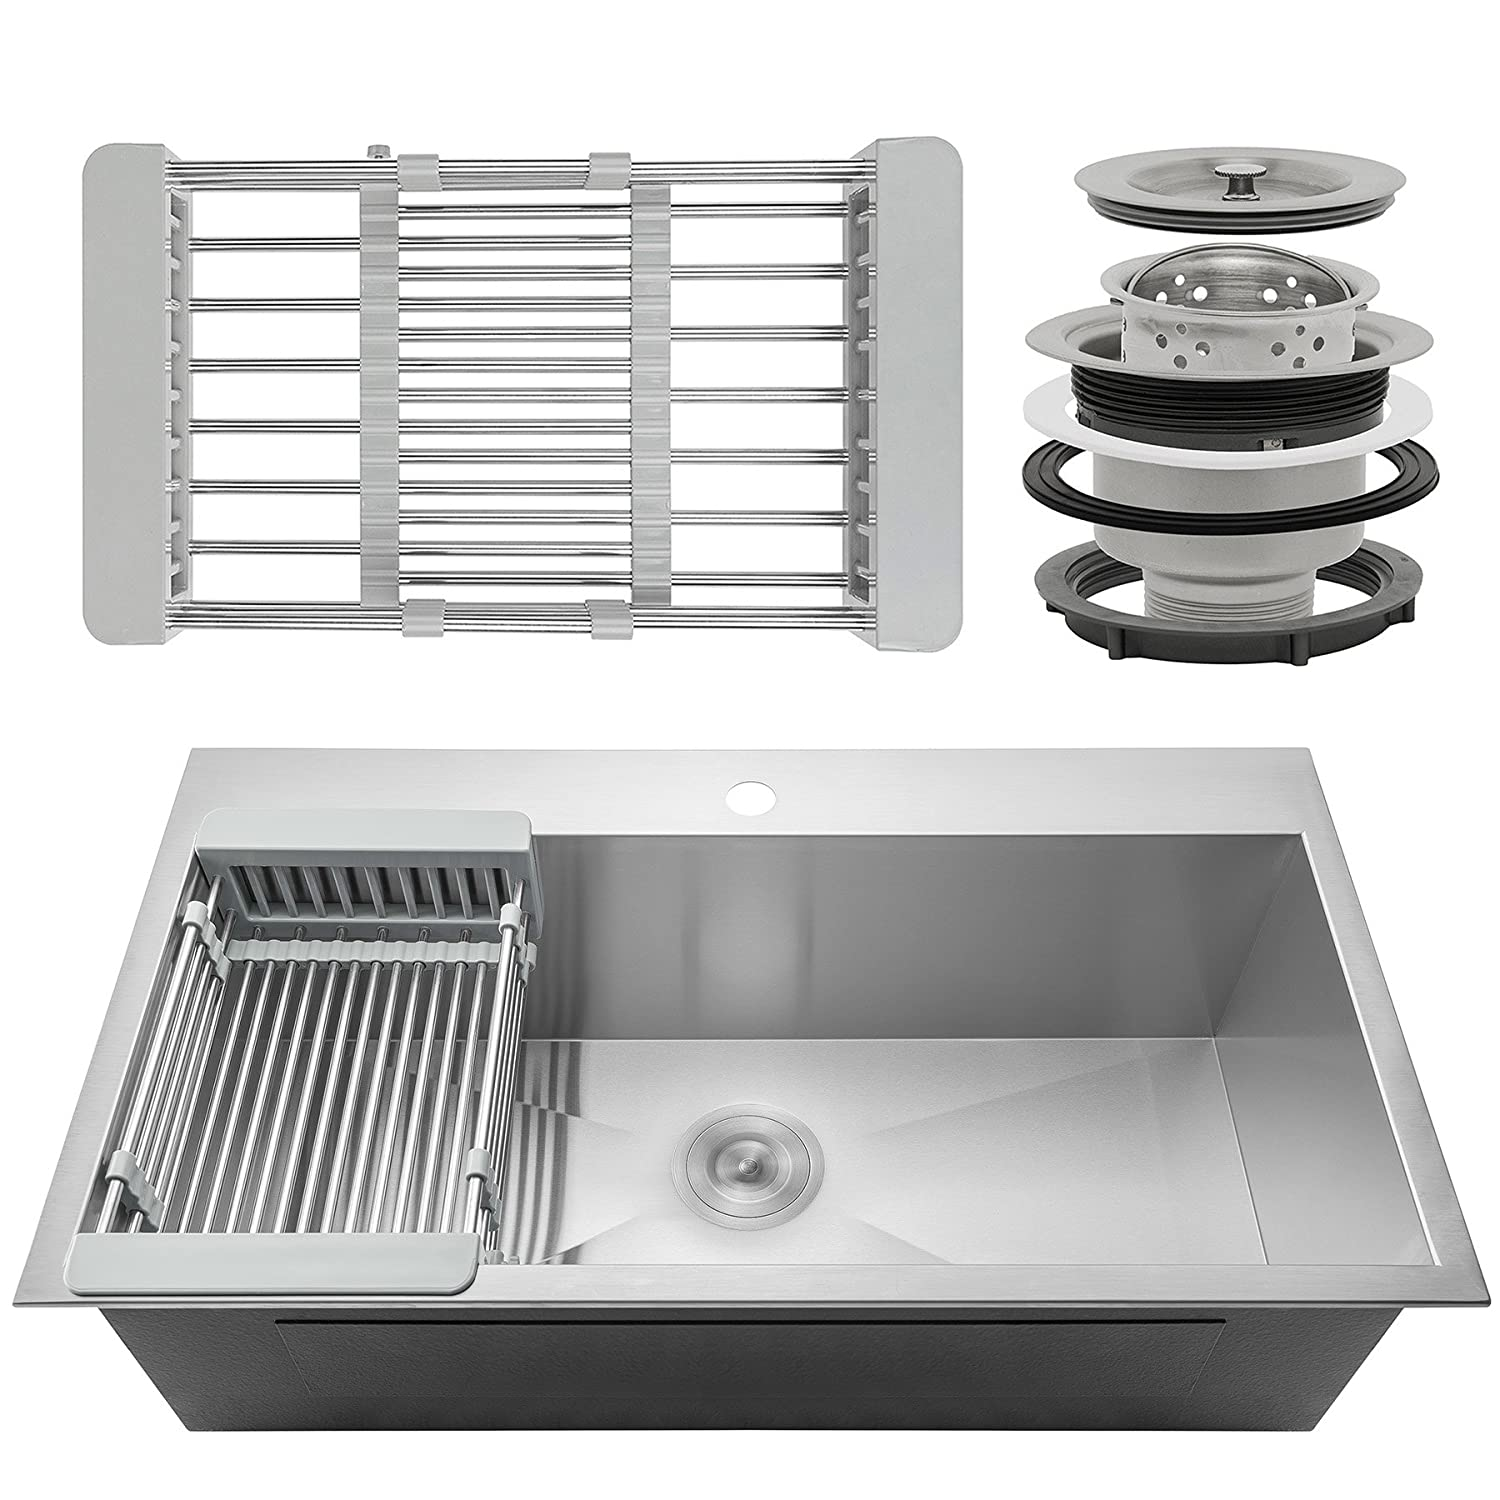 Firebird 33 x 22 x 9 Single Bowl 18 Gauge Handmade Stainless Steel Topmount Drop-In Kitchen Sink w Adjustable Dish Tray Drain